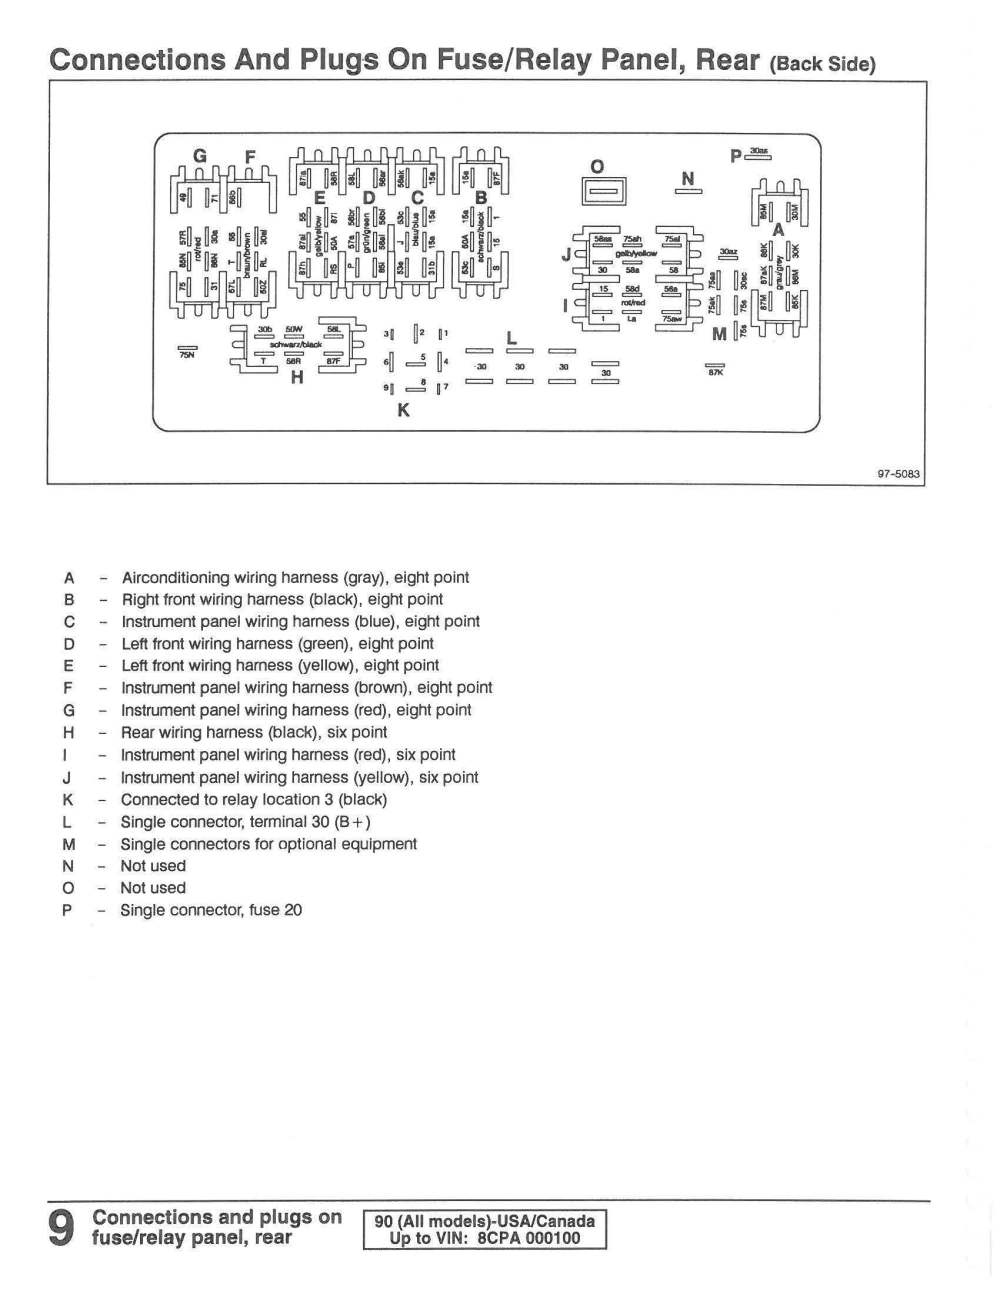 medium resolution of name pagesfromaudi90electricalwiringdiagrams1993usaampcanada zps4121aa76 jpg views 205 size 202 8 kb fuse panel pic or image